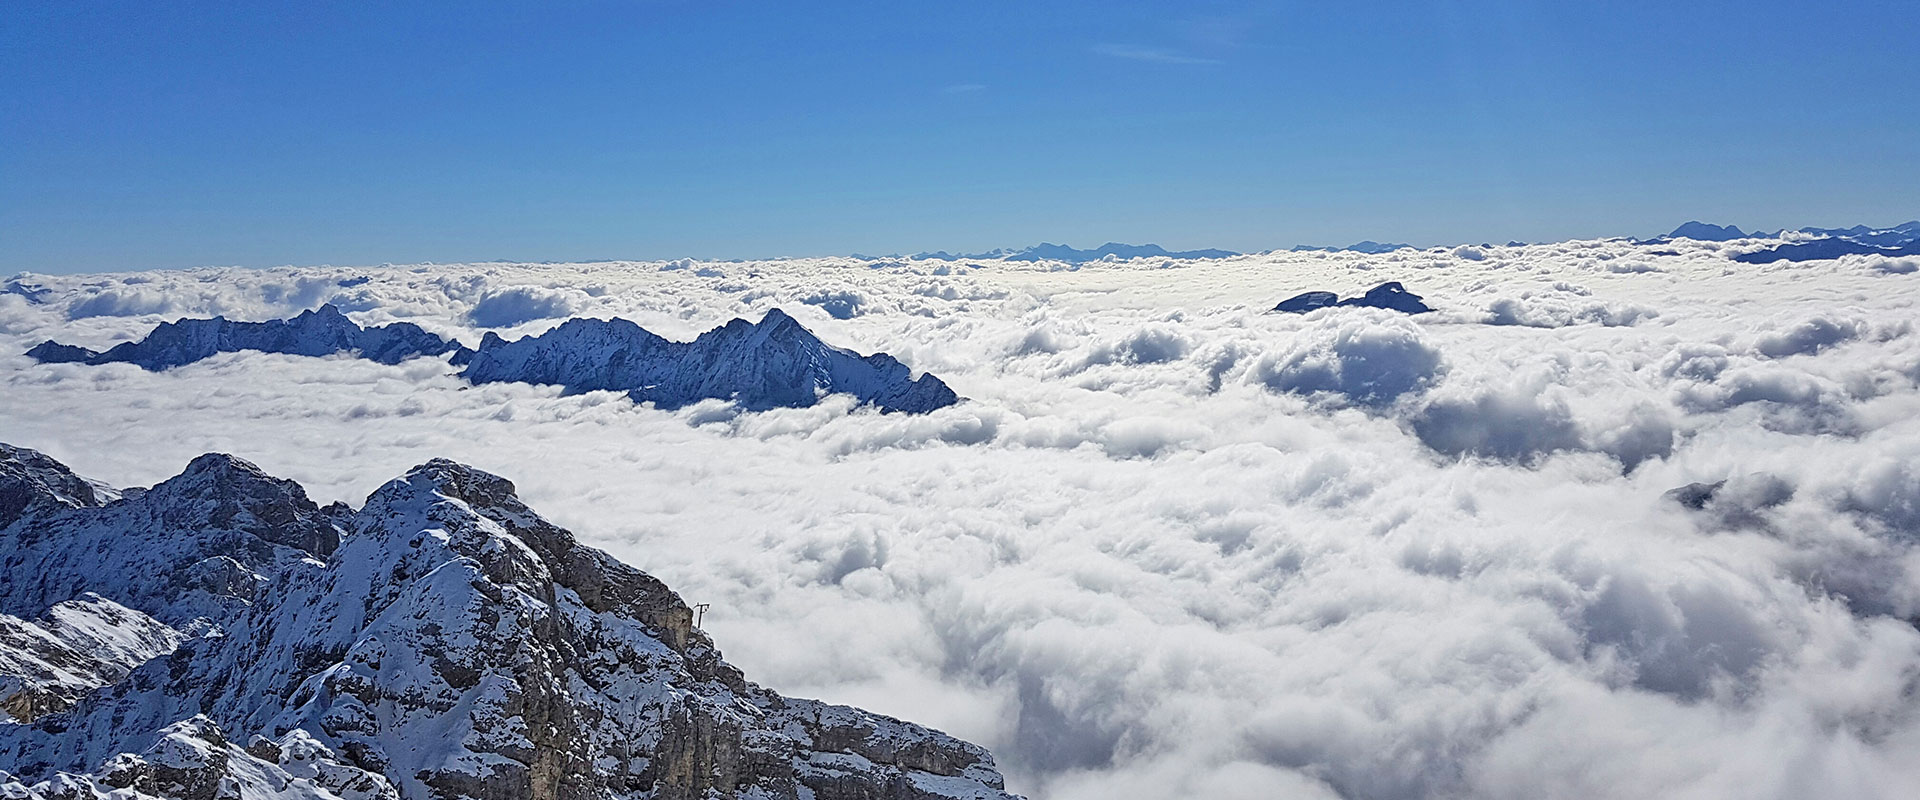 Private Tour to Zugspitze and Garmisch-Partenkirchen